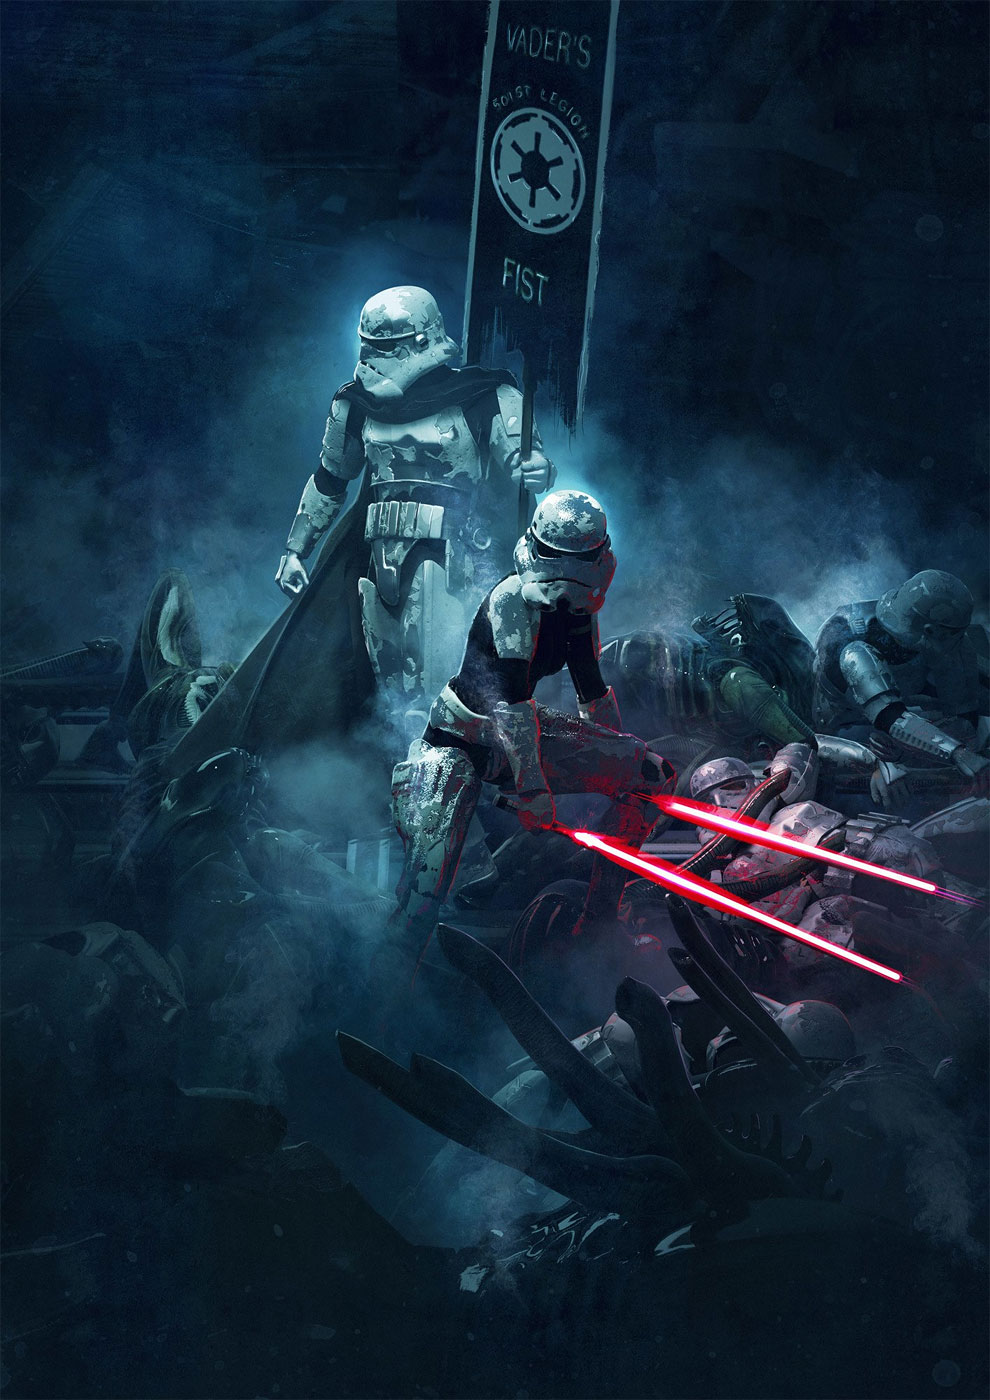 alien-vs-stormtrooper-2